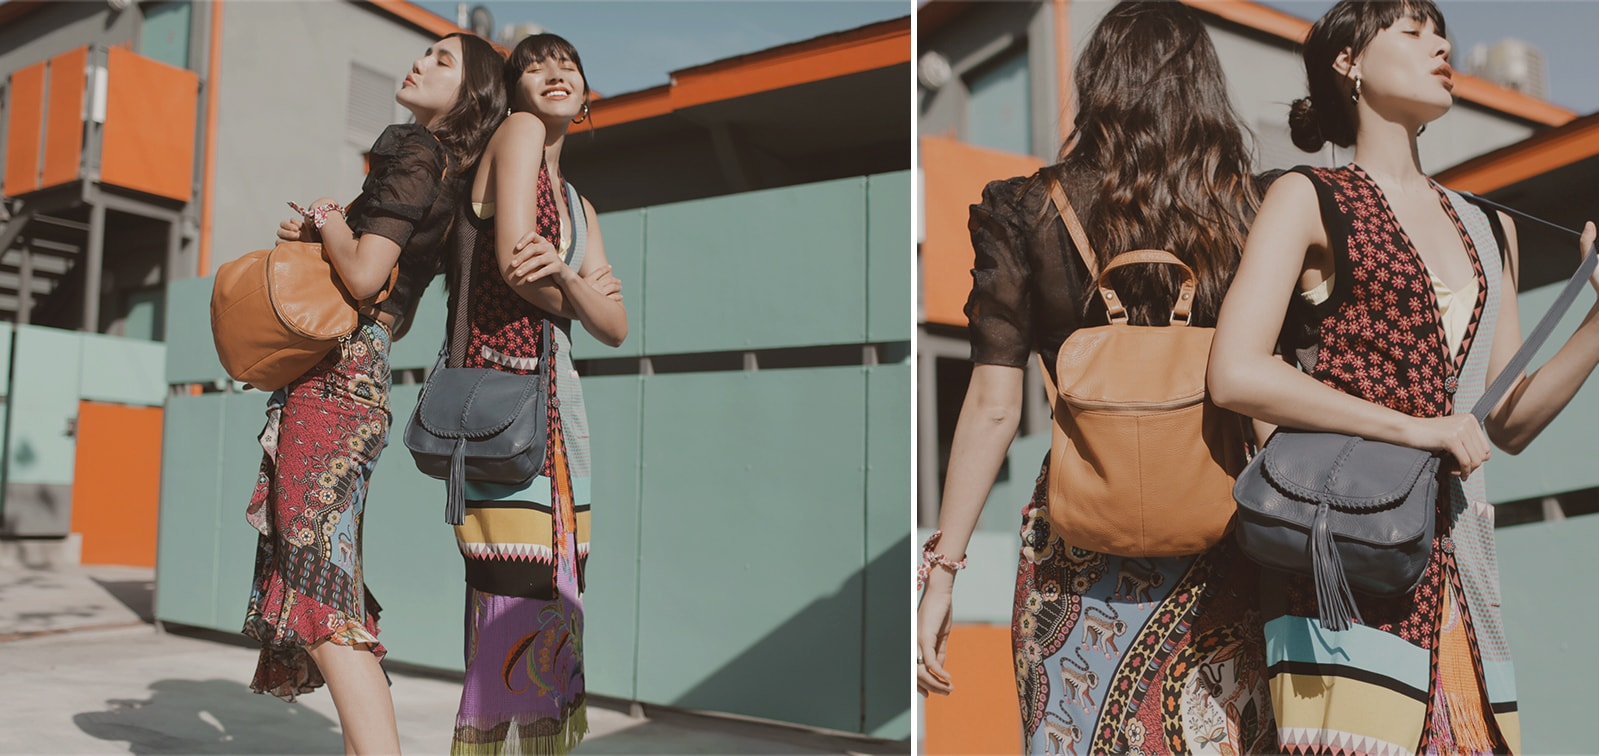 Dylana and Natalie Suarez with the River Backpack and Brio crossbody